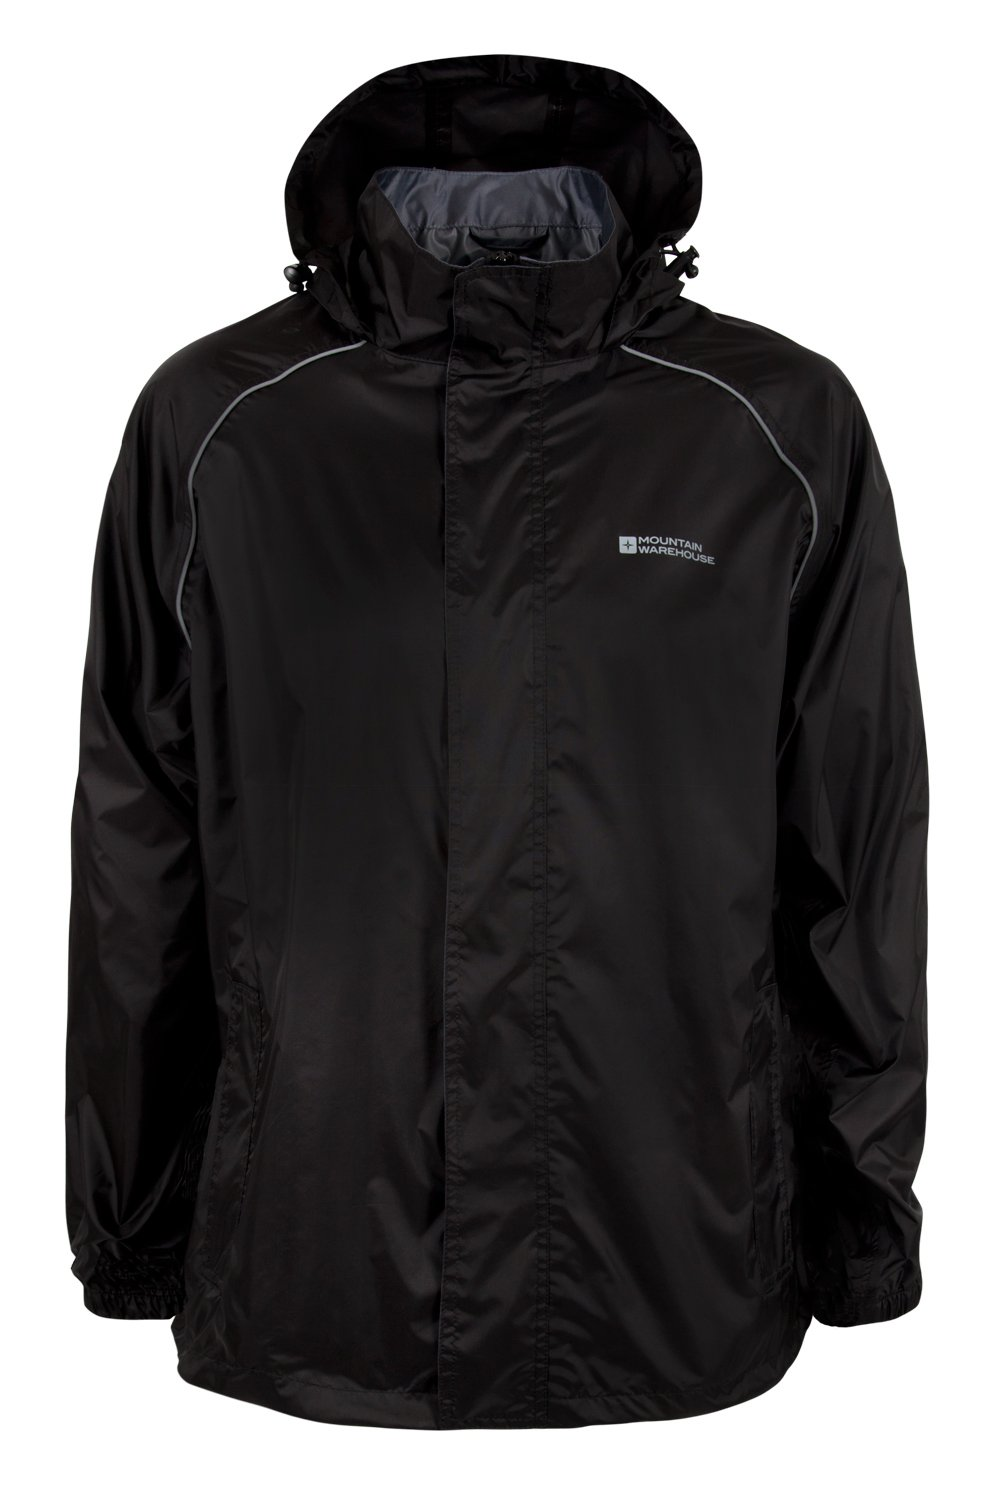 Mountain Warehouse Pakka Mens Packable Jacket -Waterproof Summer Coat Black Small by Mountain Warehouse